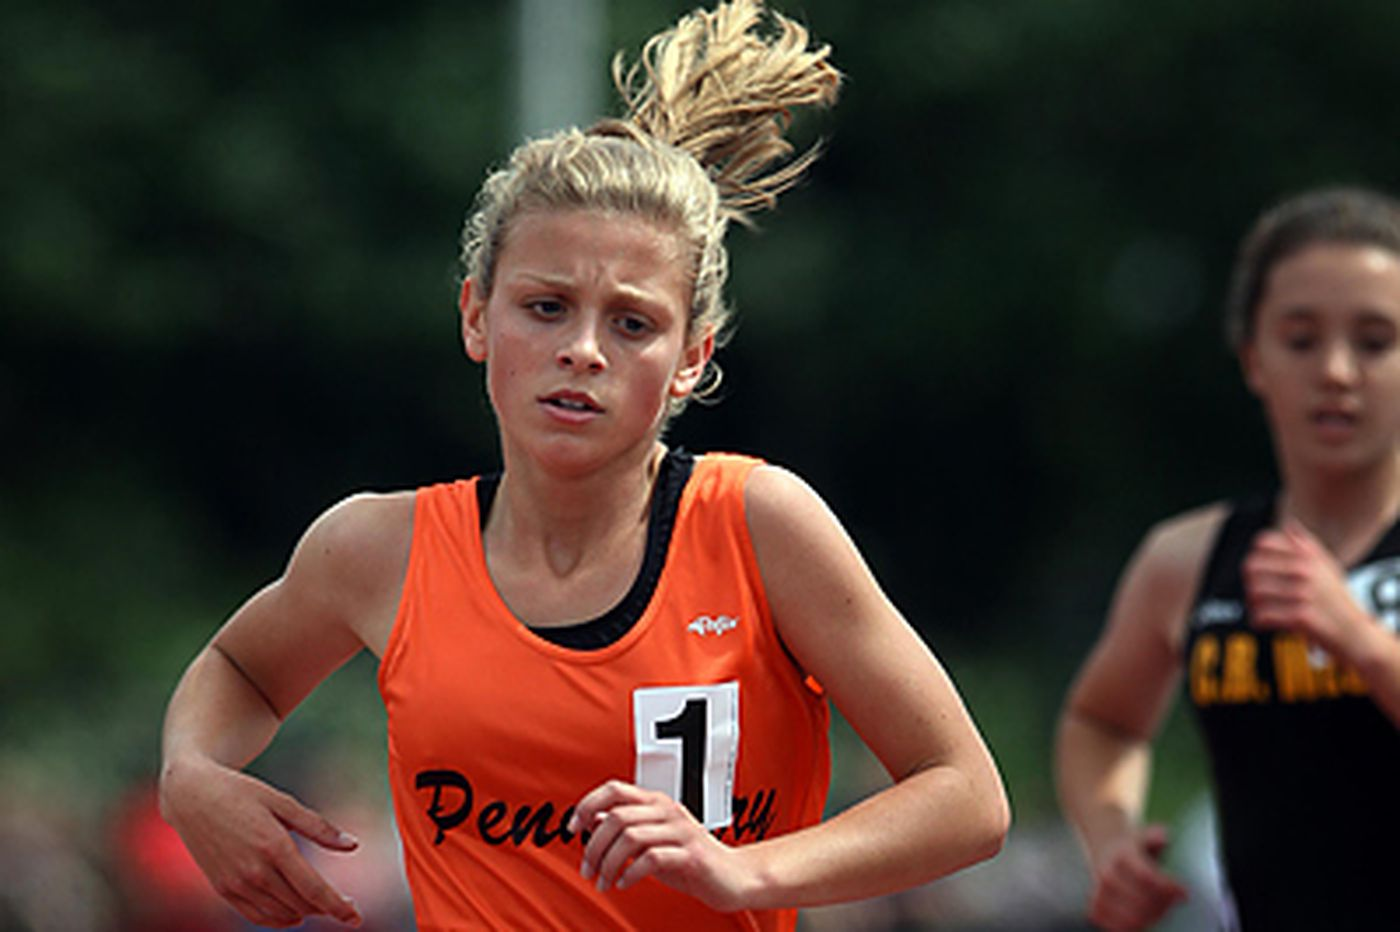 Pennsbury freshman breaks another district track record